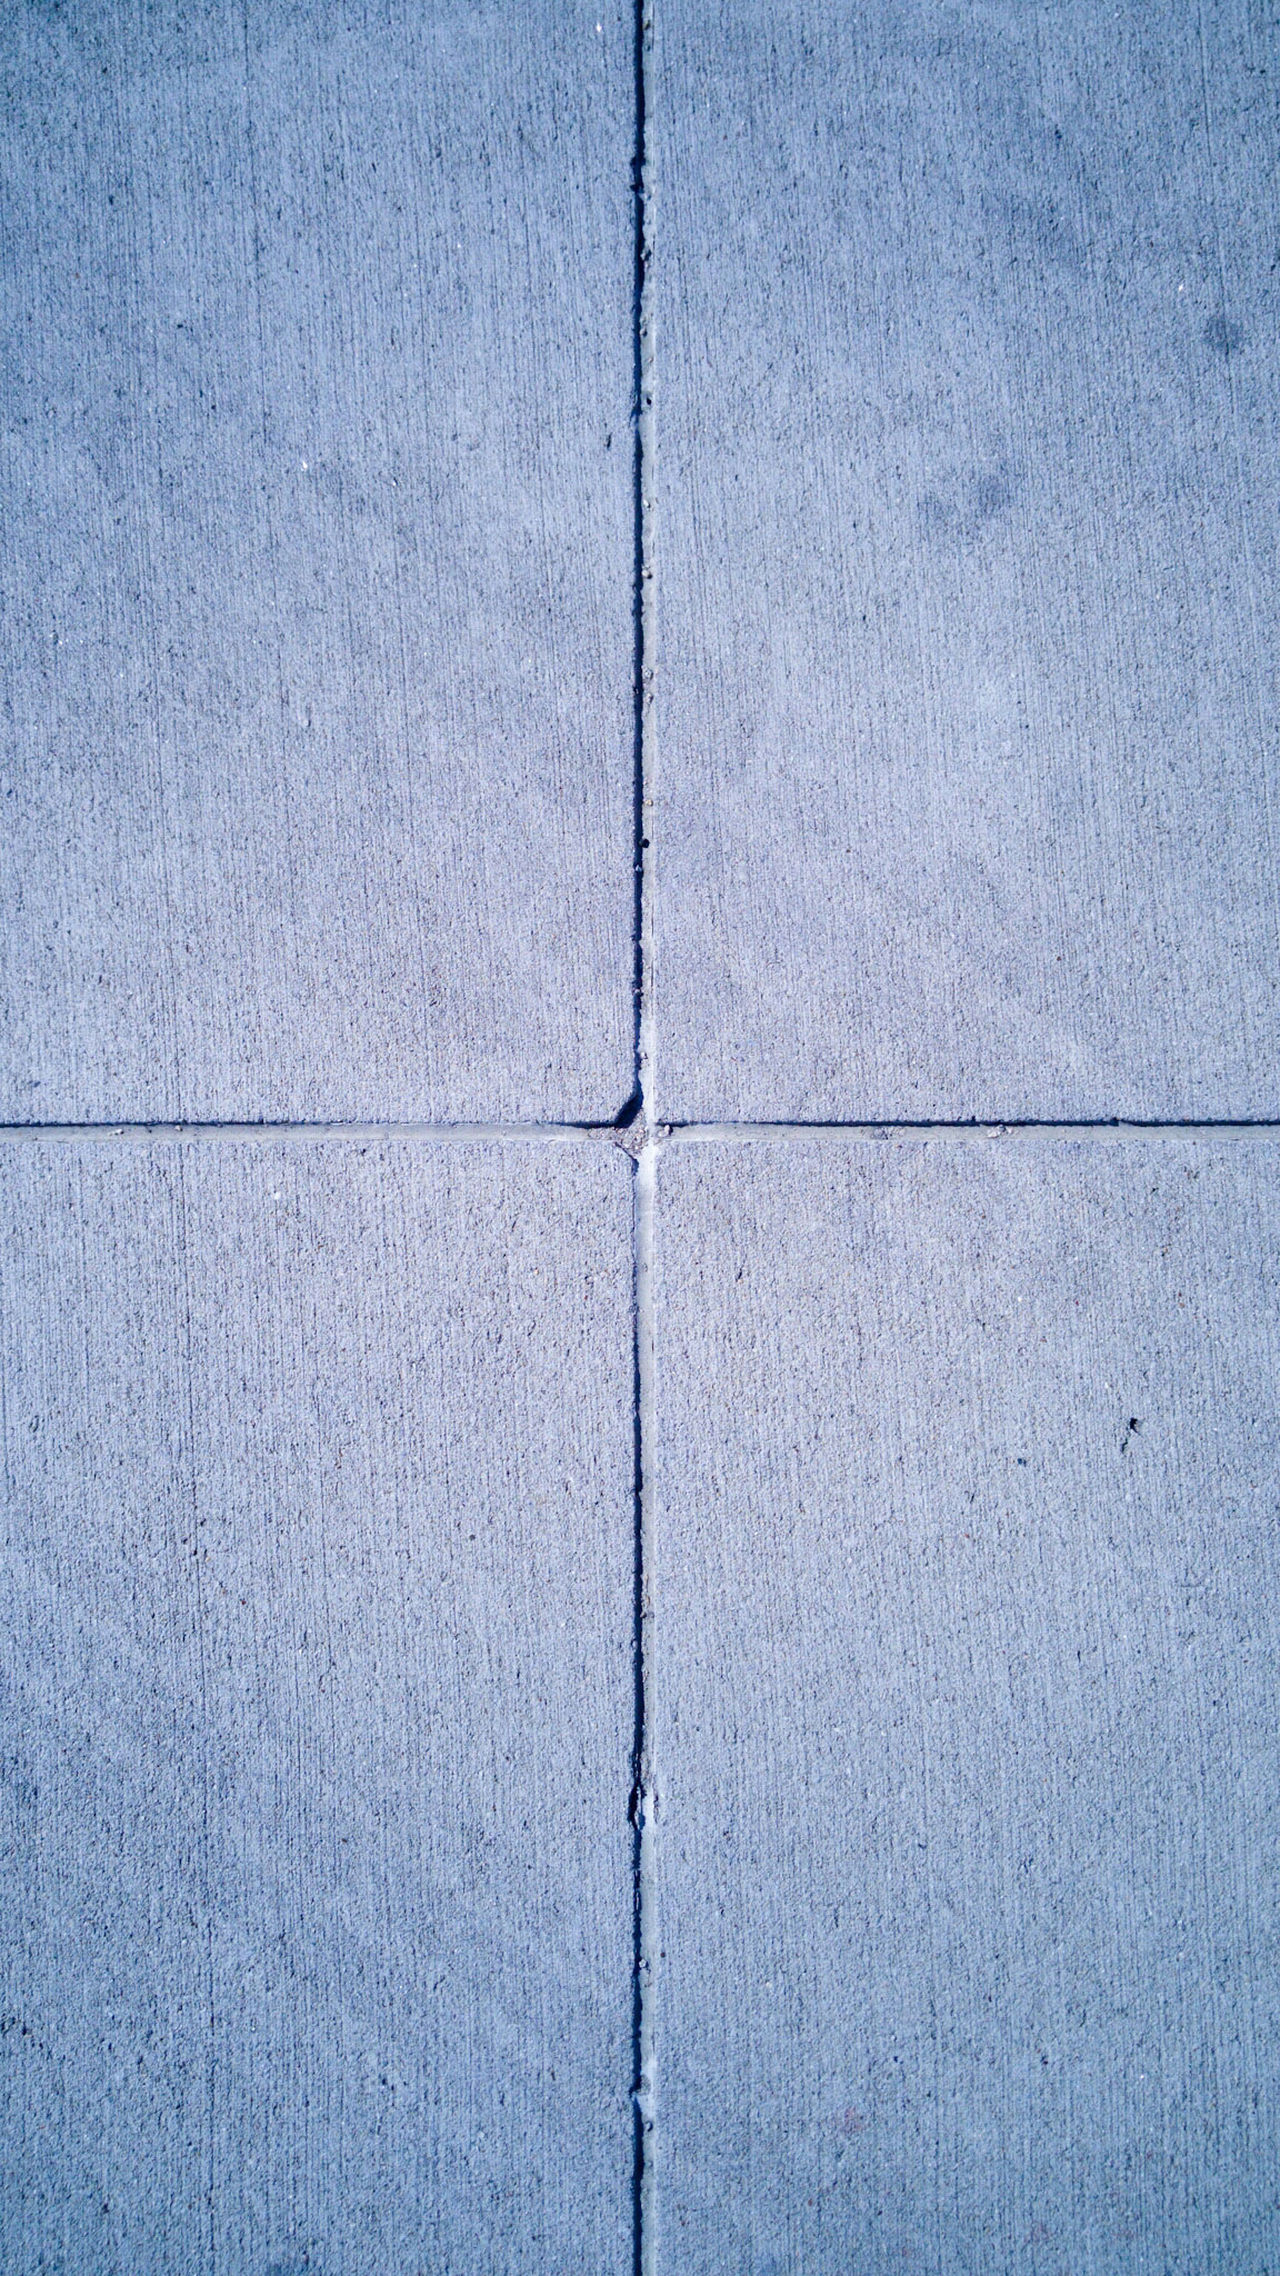 Concrete Rock Hard Surface Road Simple Clean Dirty Rough Divided Sections Quarters Equal